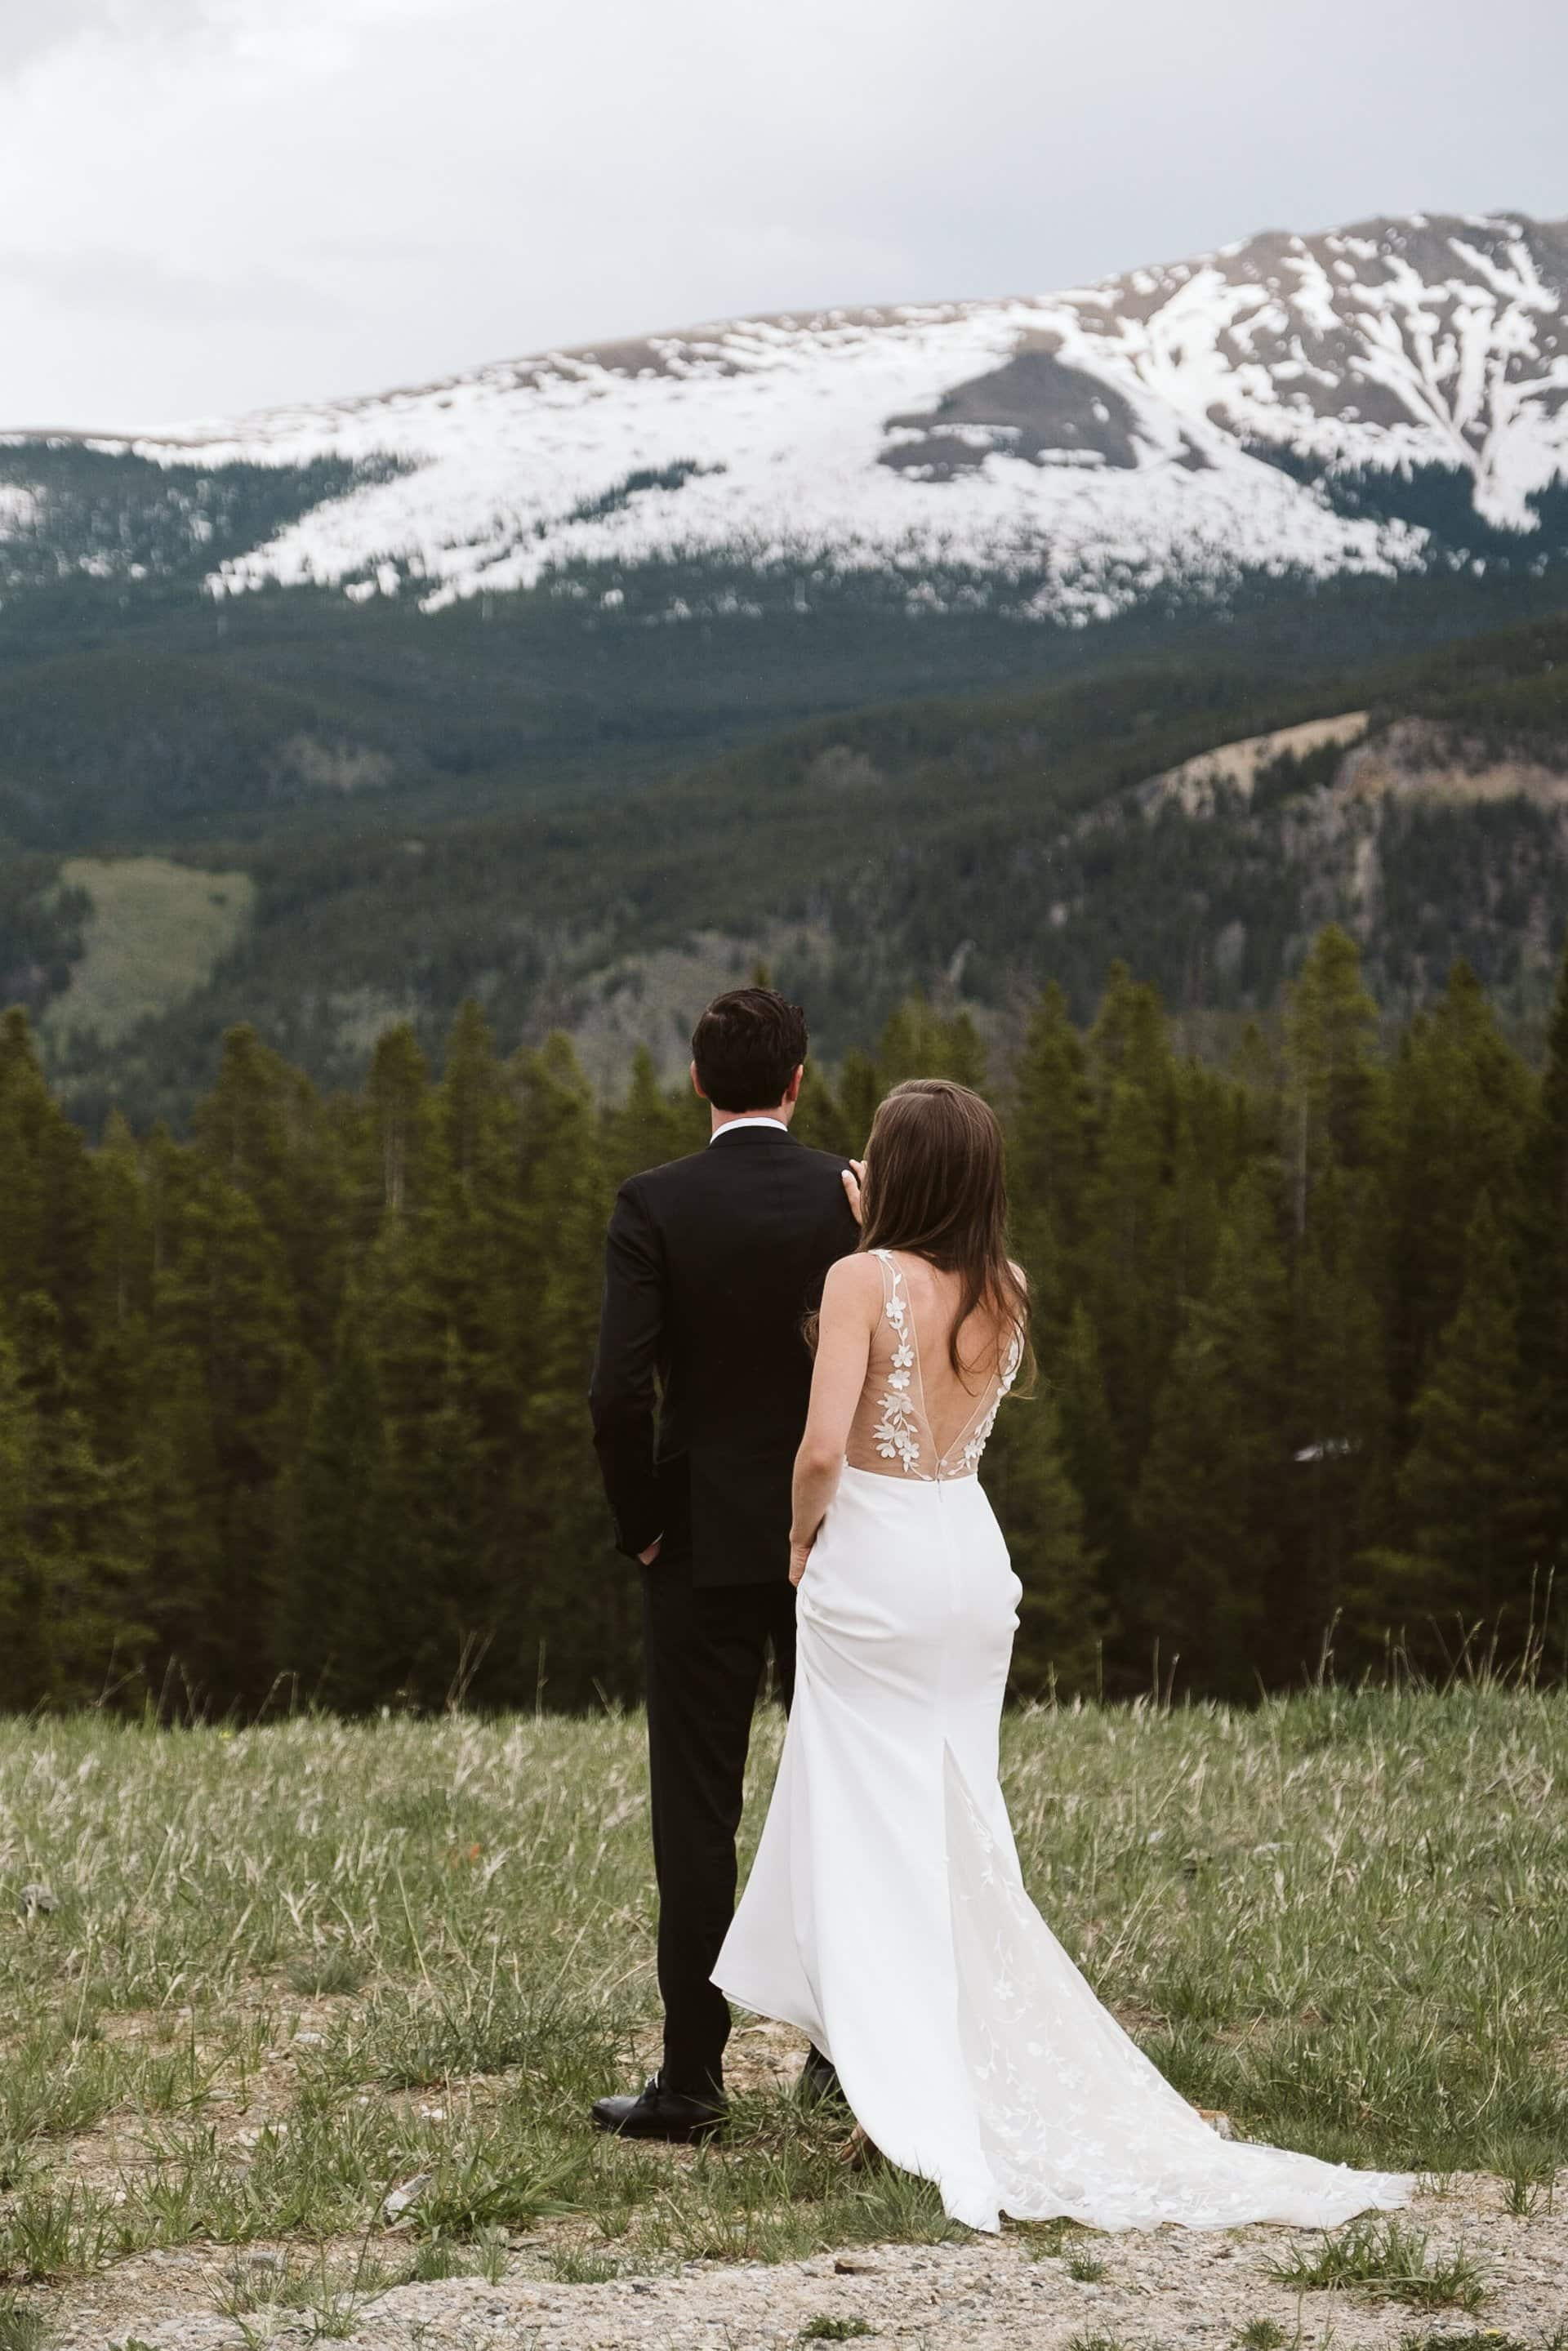 Bride and groom first look at Ten Mile Station, Breckenridge ski resort wedding, Colorado mountain wedding photographer